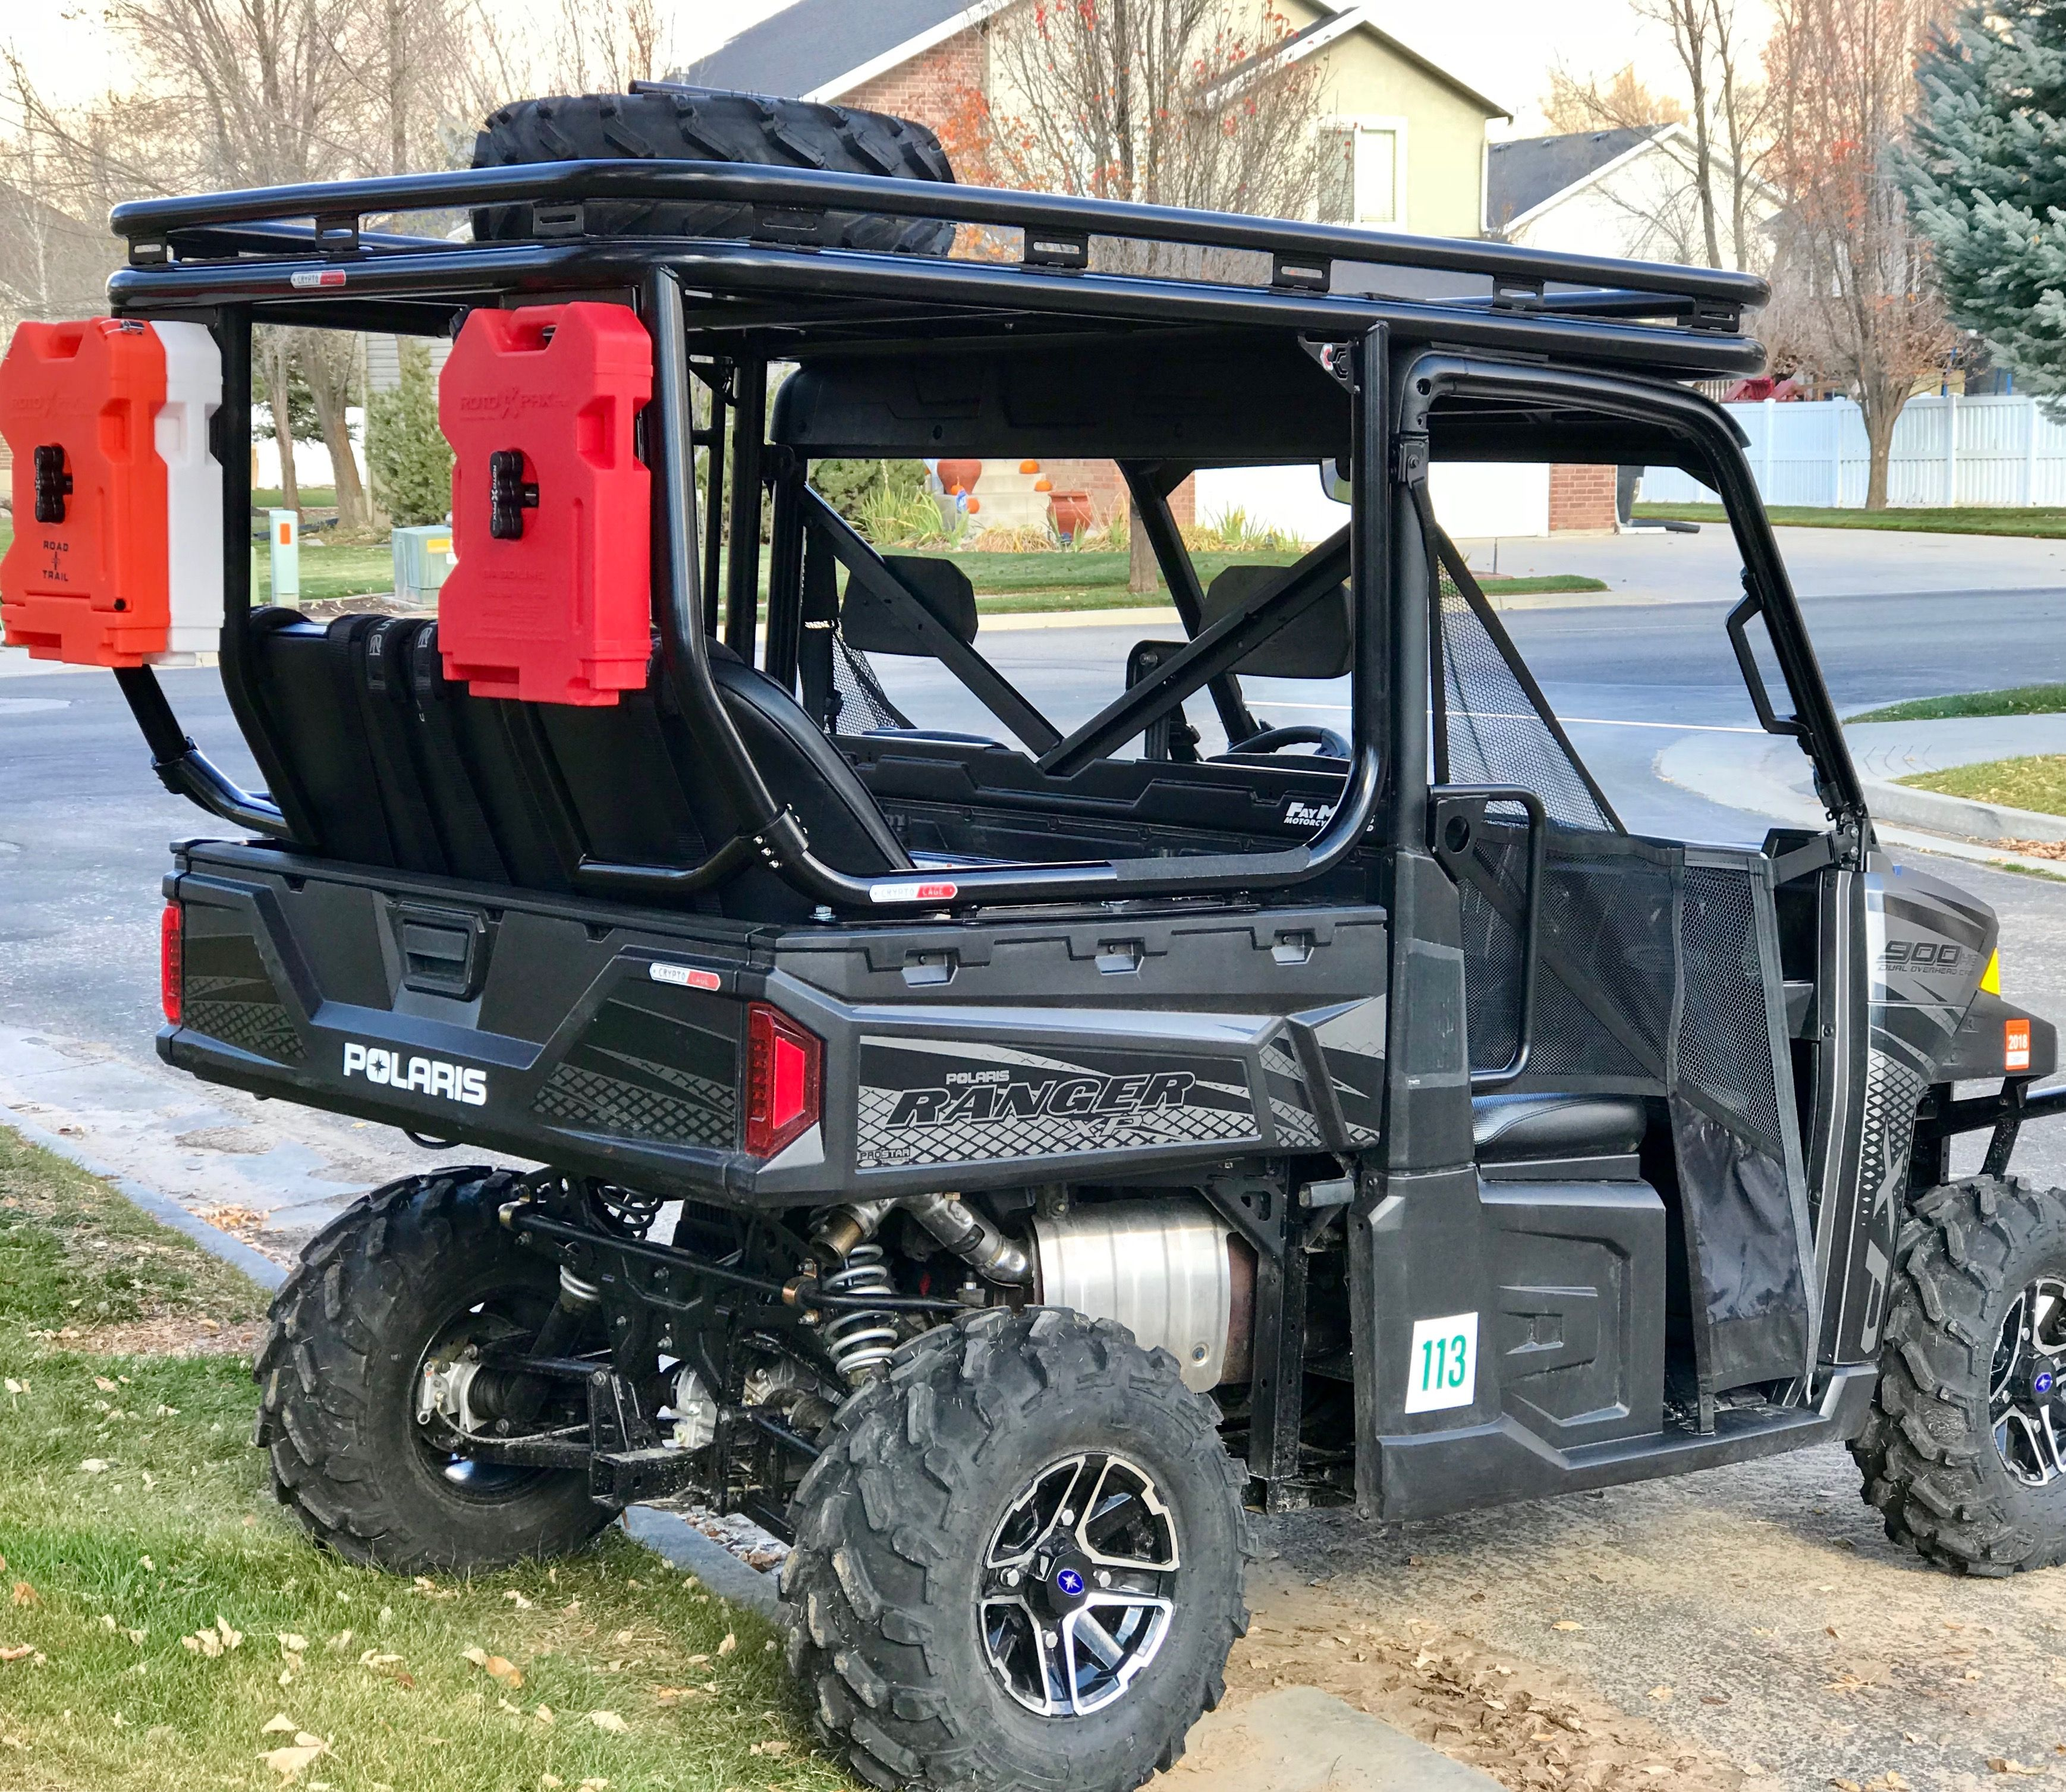 Cryptocage Introduces The Kong Cage For The Polaris Ranger 900 And 1000 The Kong Cage Has A Cab Polaris Ranger Polaris Ranger Accessories Polaris Ranger Rack